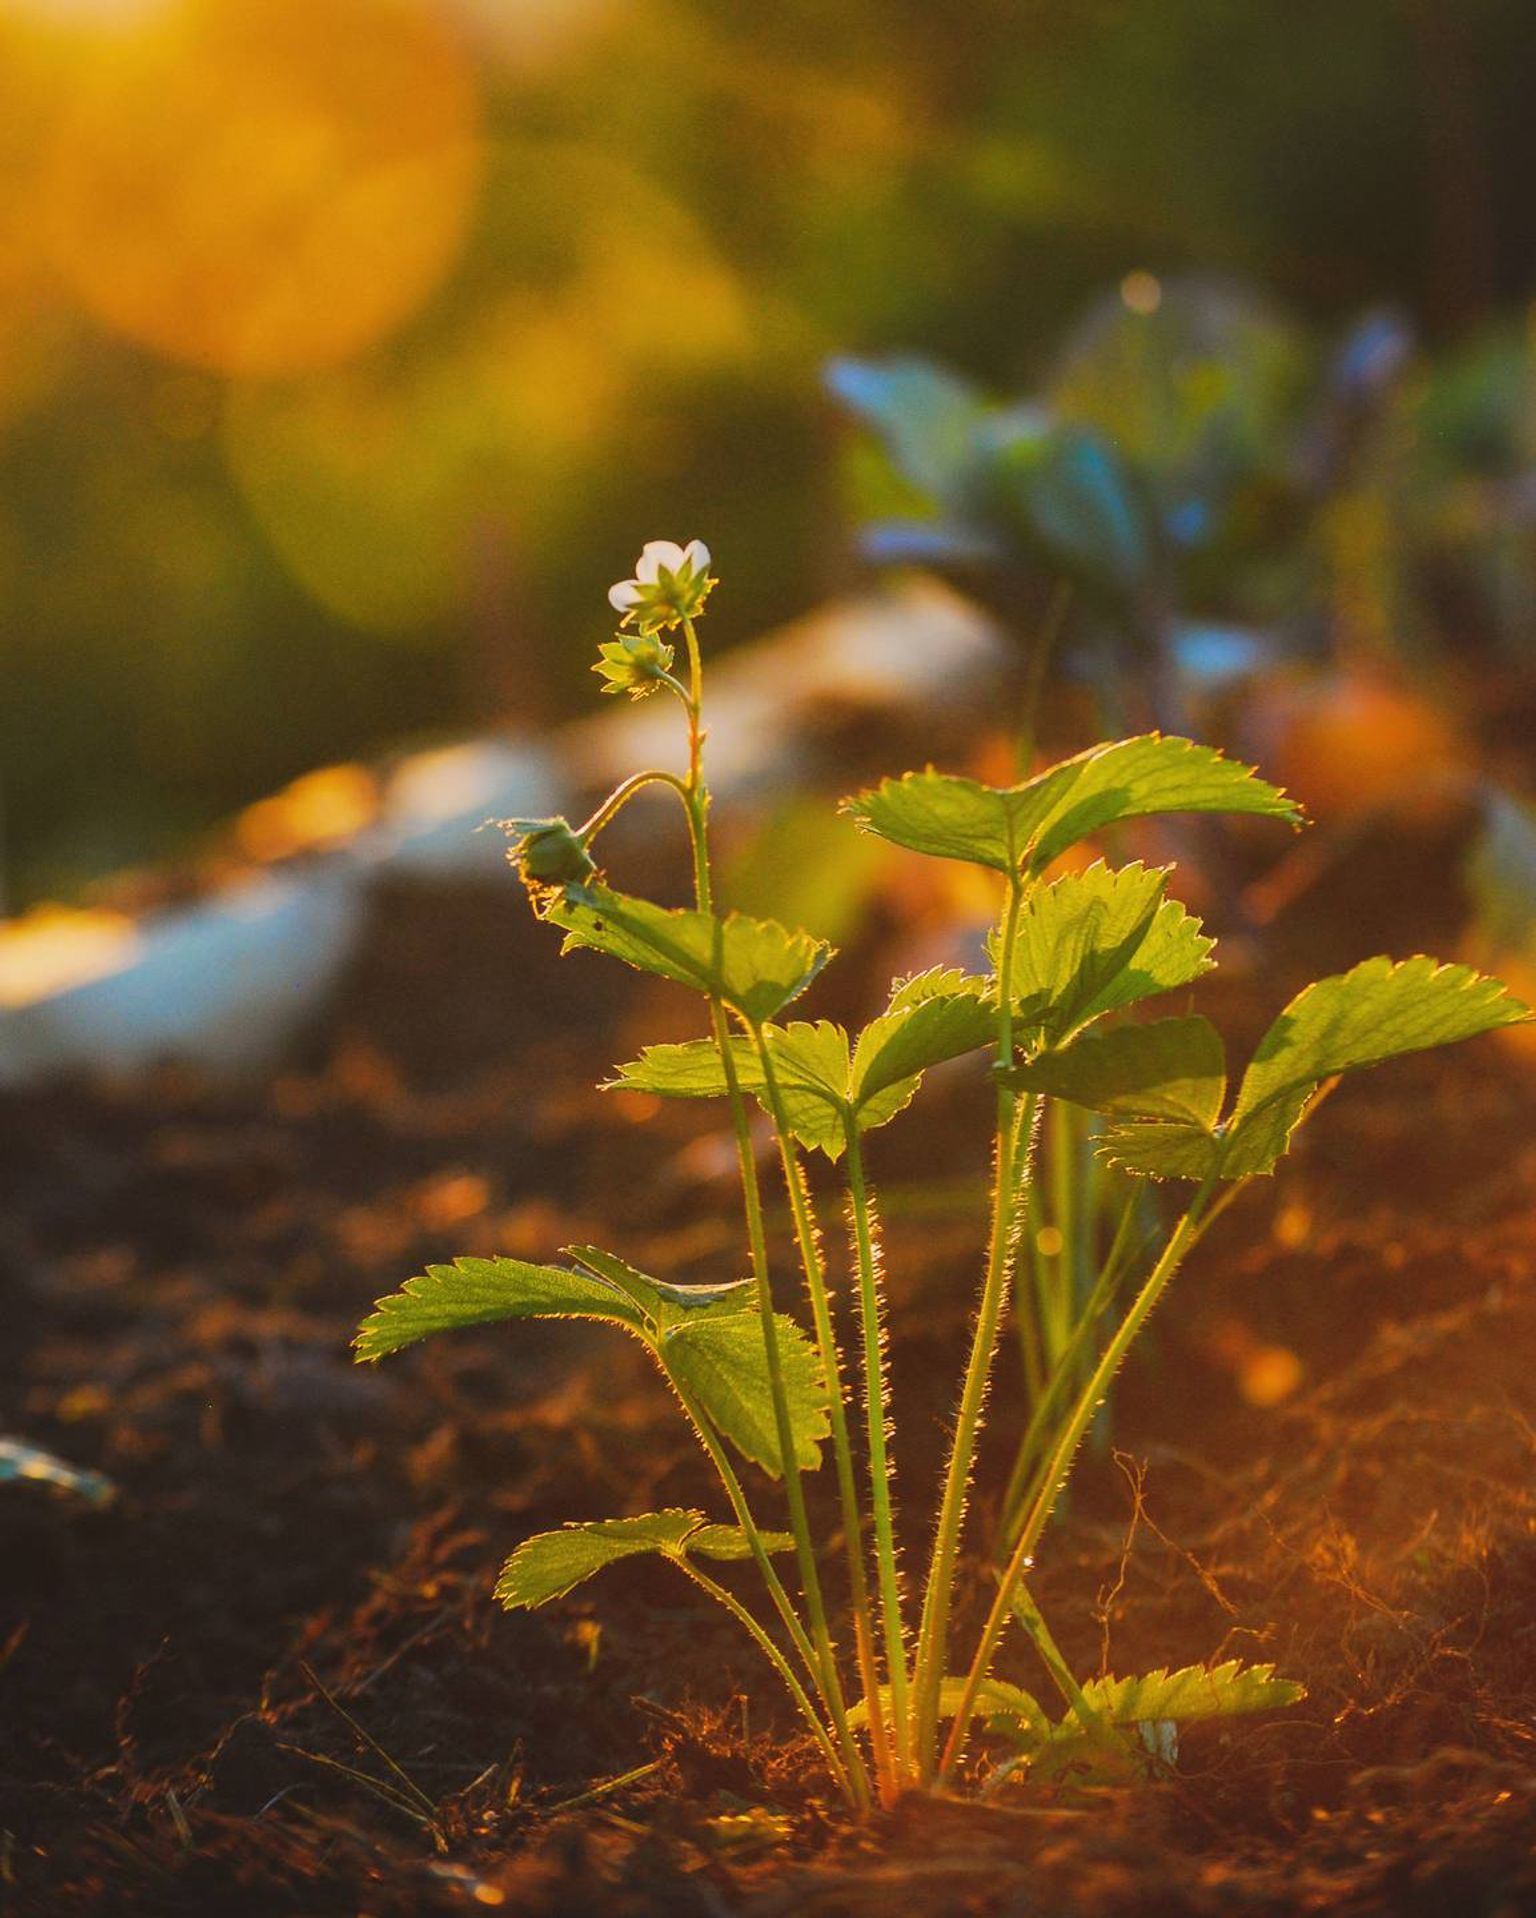 Strawberry plant in a garden with lots of sunlight. Rewire PBS Love Gardener